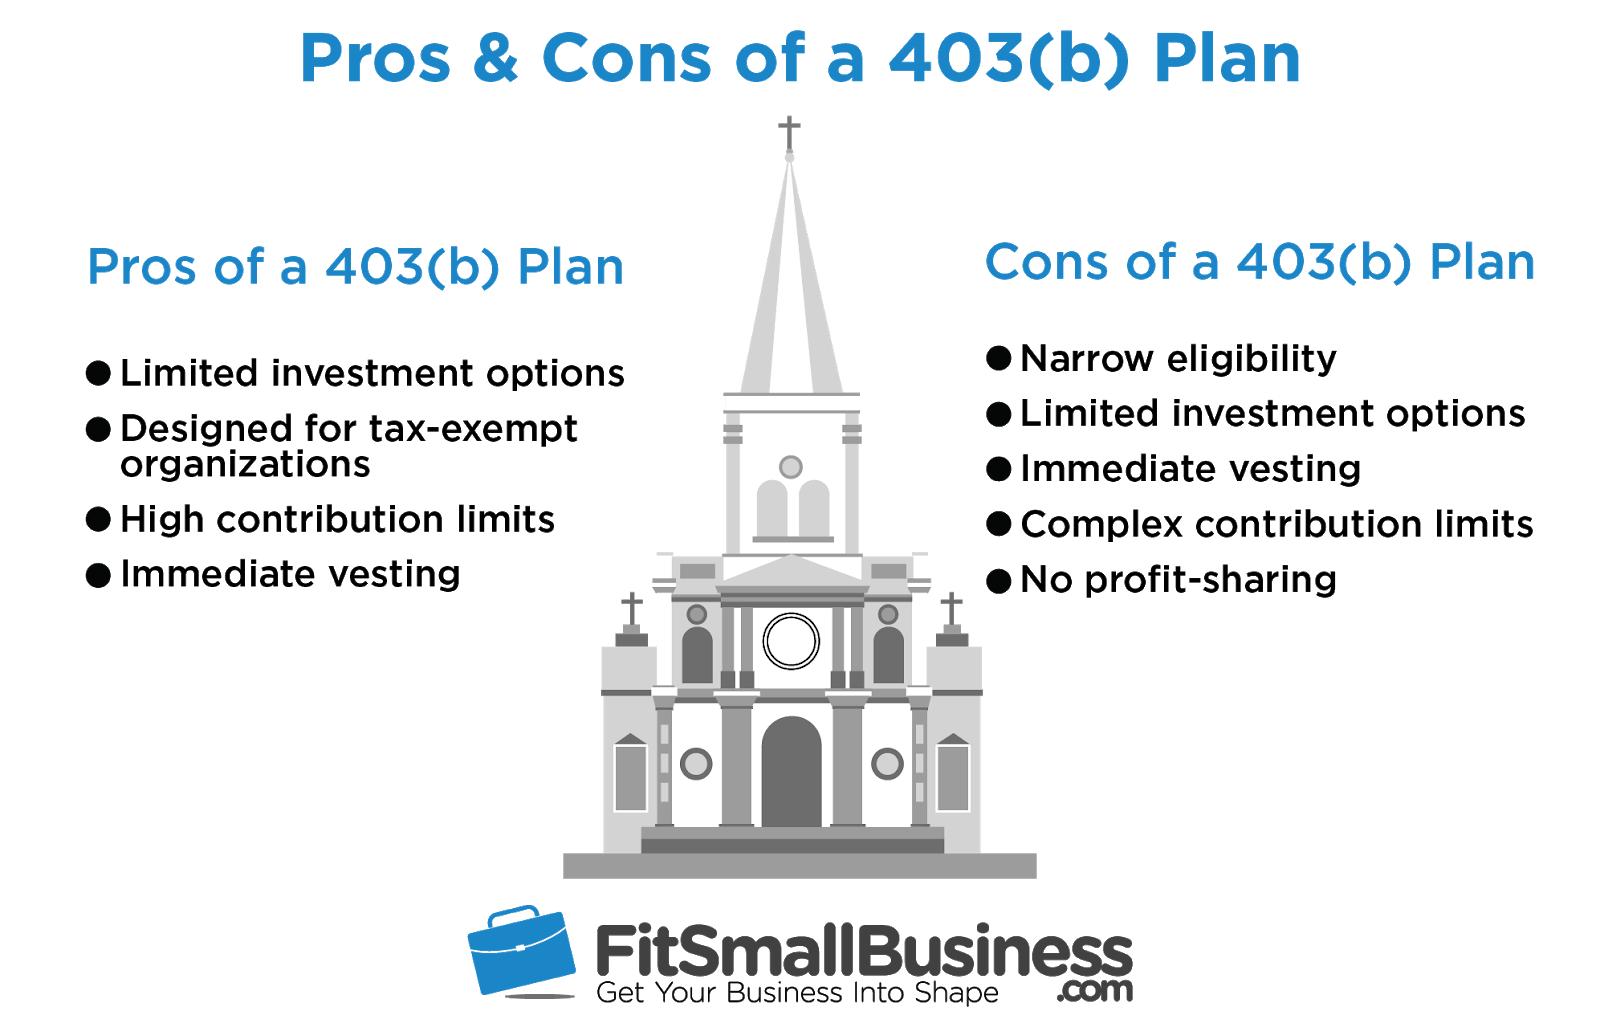 Pros and Cons of a 403(b) Plan